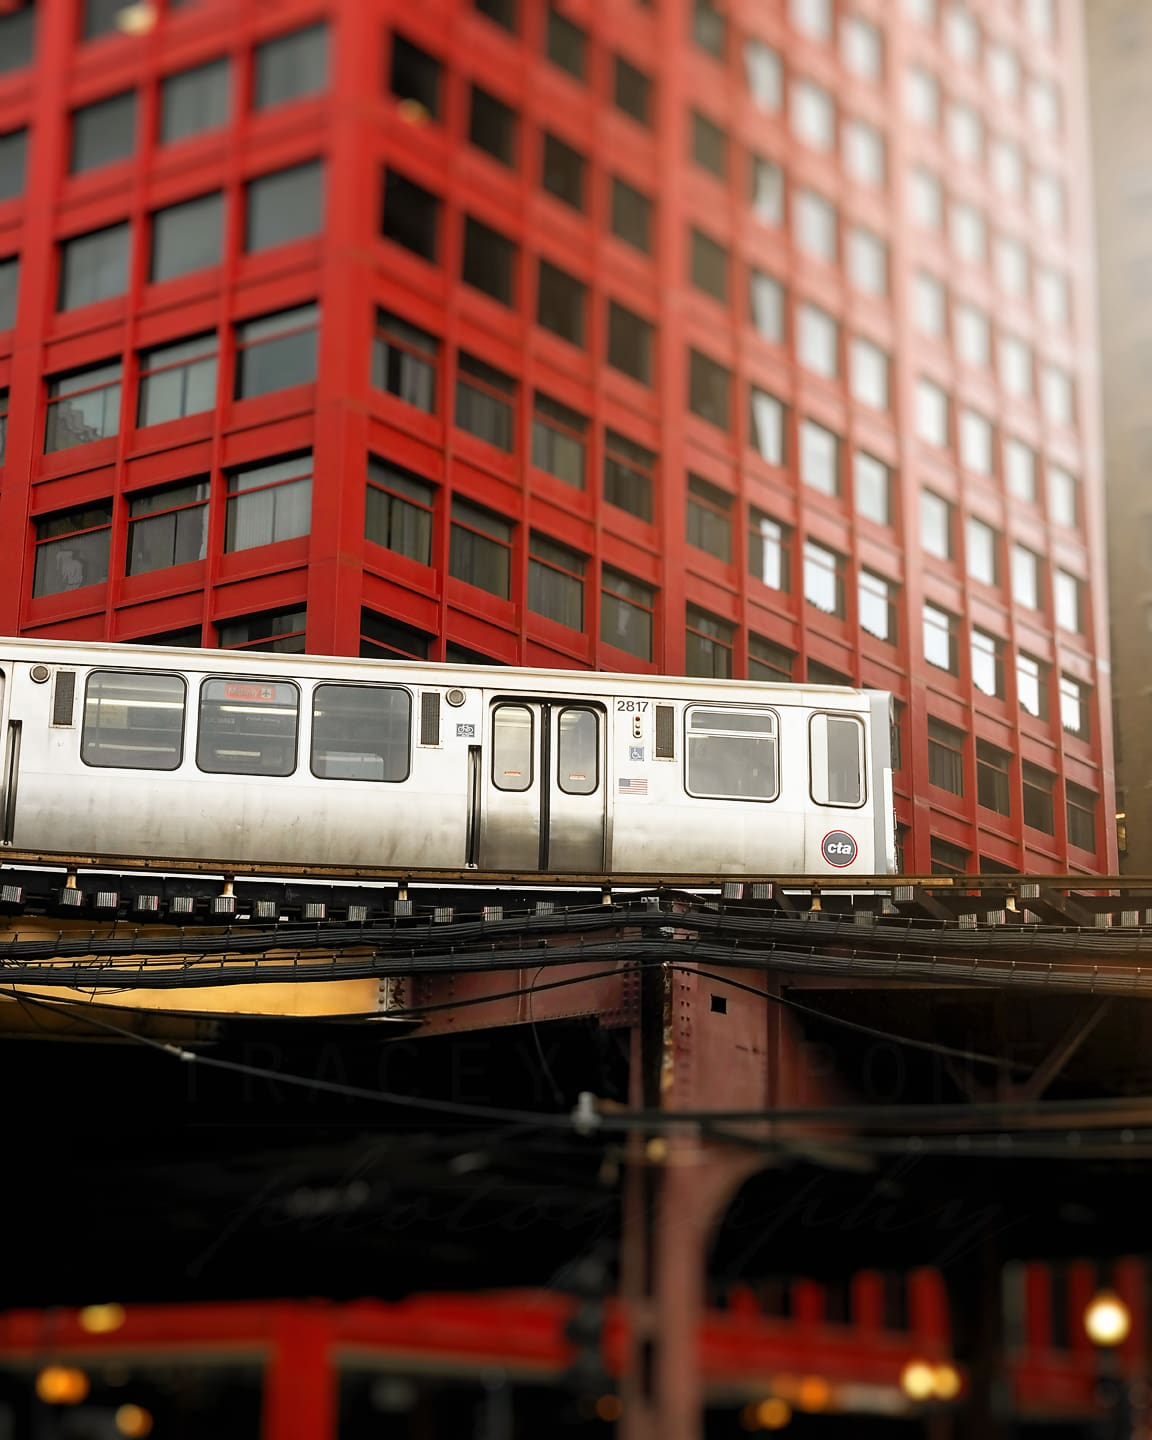 A CTA running along the elevated tracks in front of the red CNA building in downtown Chicago. Photography by Tracey Capone